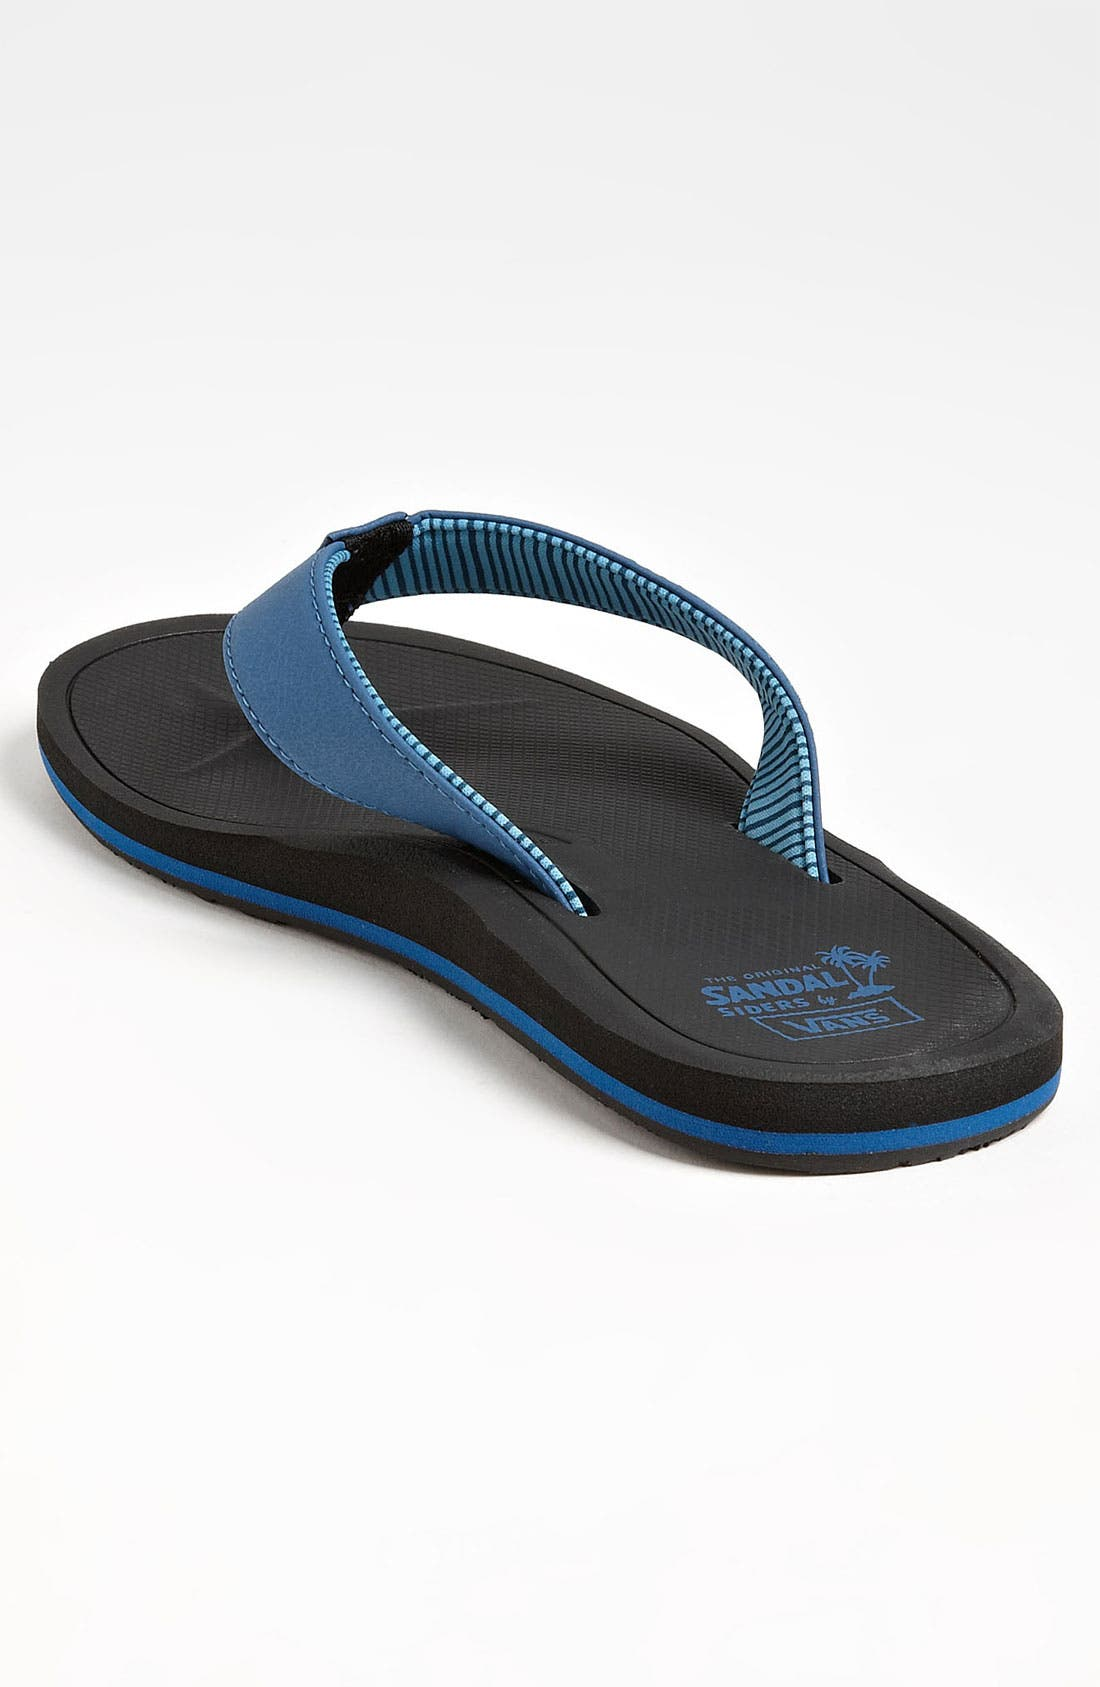 Alternate Image 2  - Vans 'Nexpa Pro' Flip Flop (Men)